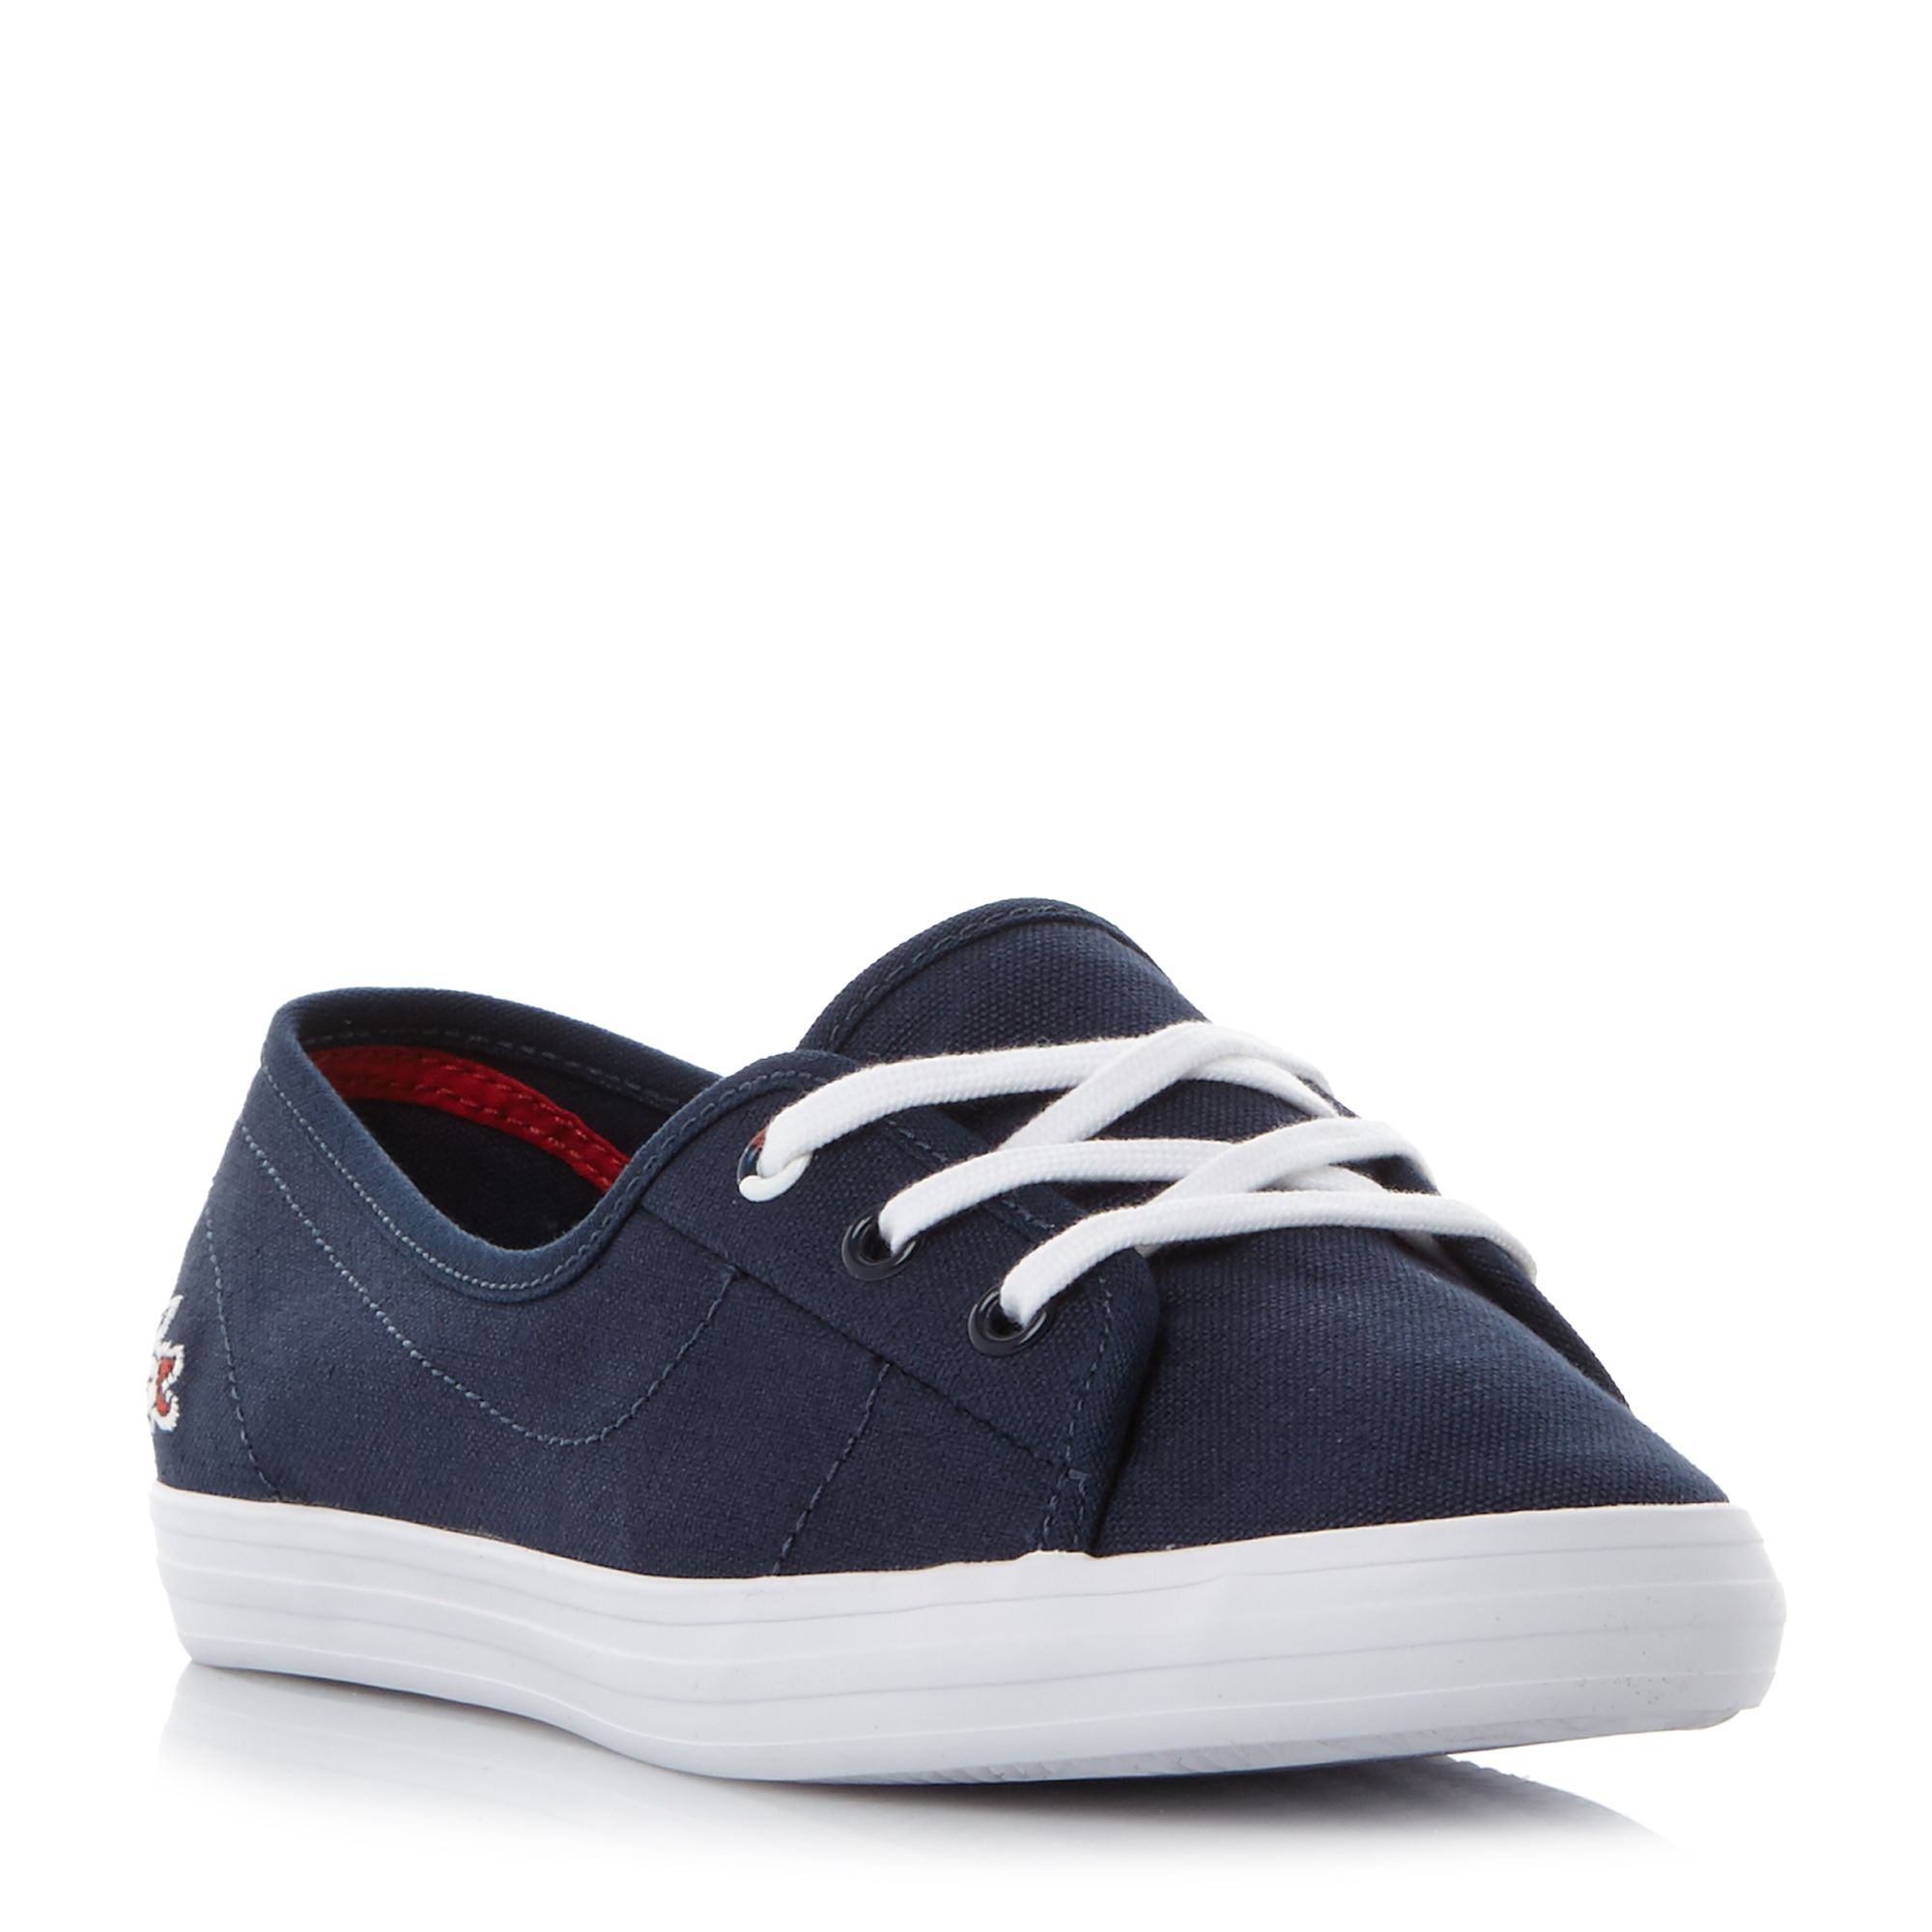 Lacoste Ziane Chunky Lace Up Canvas Pump Shoes, Blue